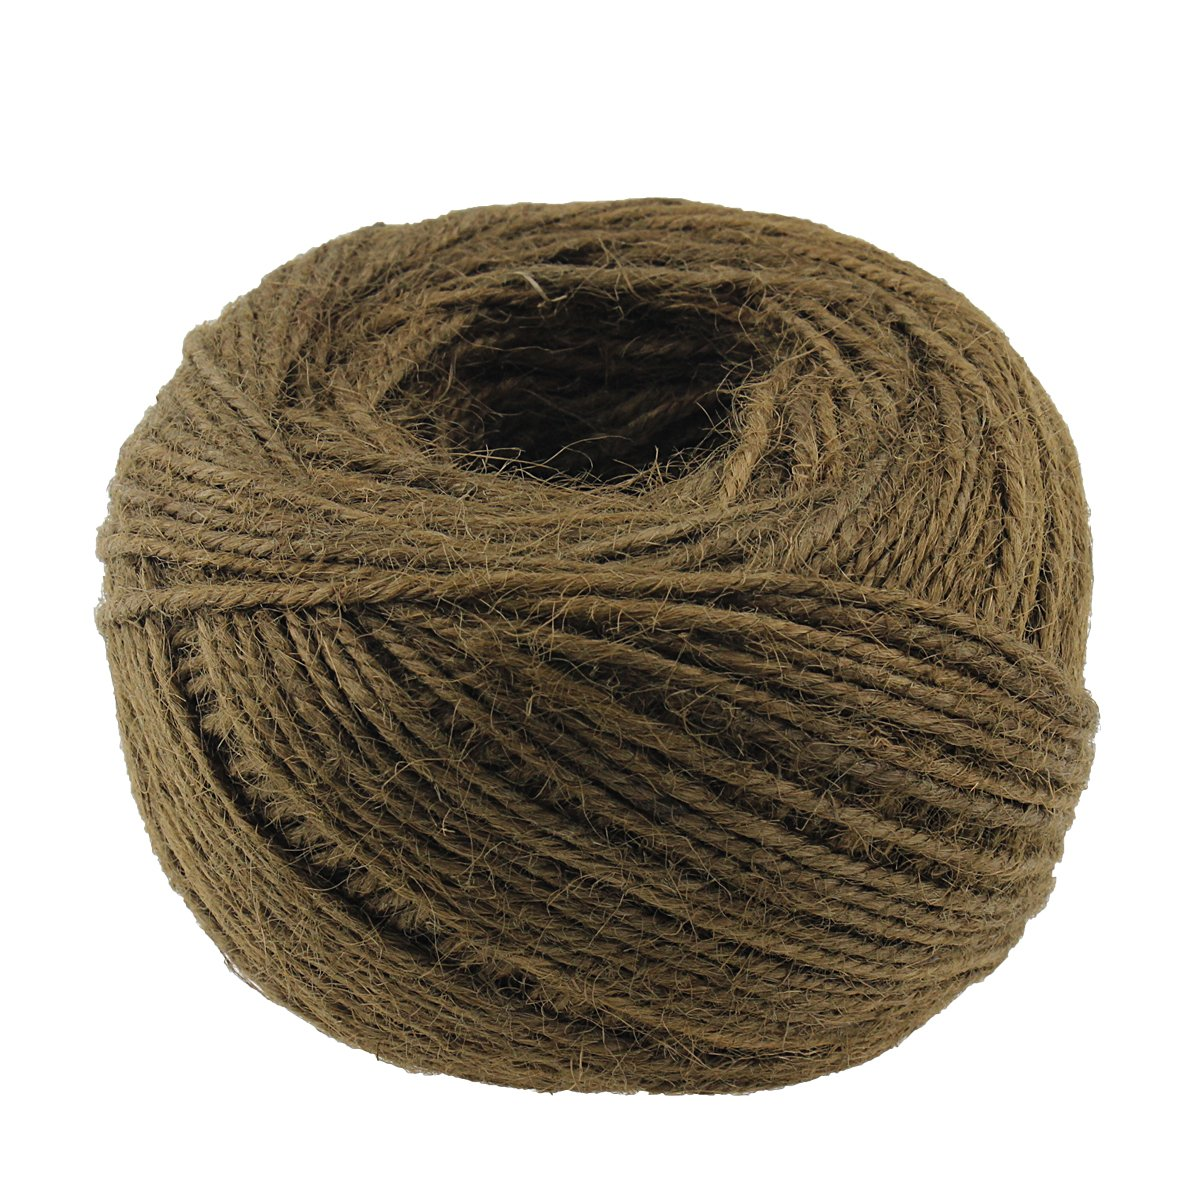 100M/Roll 2mm Natural Jute Twine Rope Hemp Strong Cord Thick Rope String for DIY Craft Home Garden Deco (Yellow) McFan